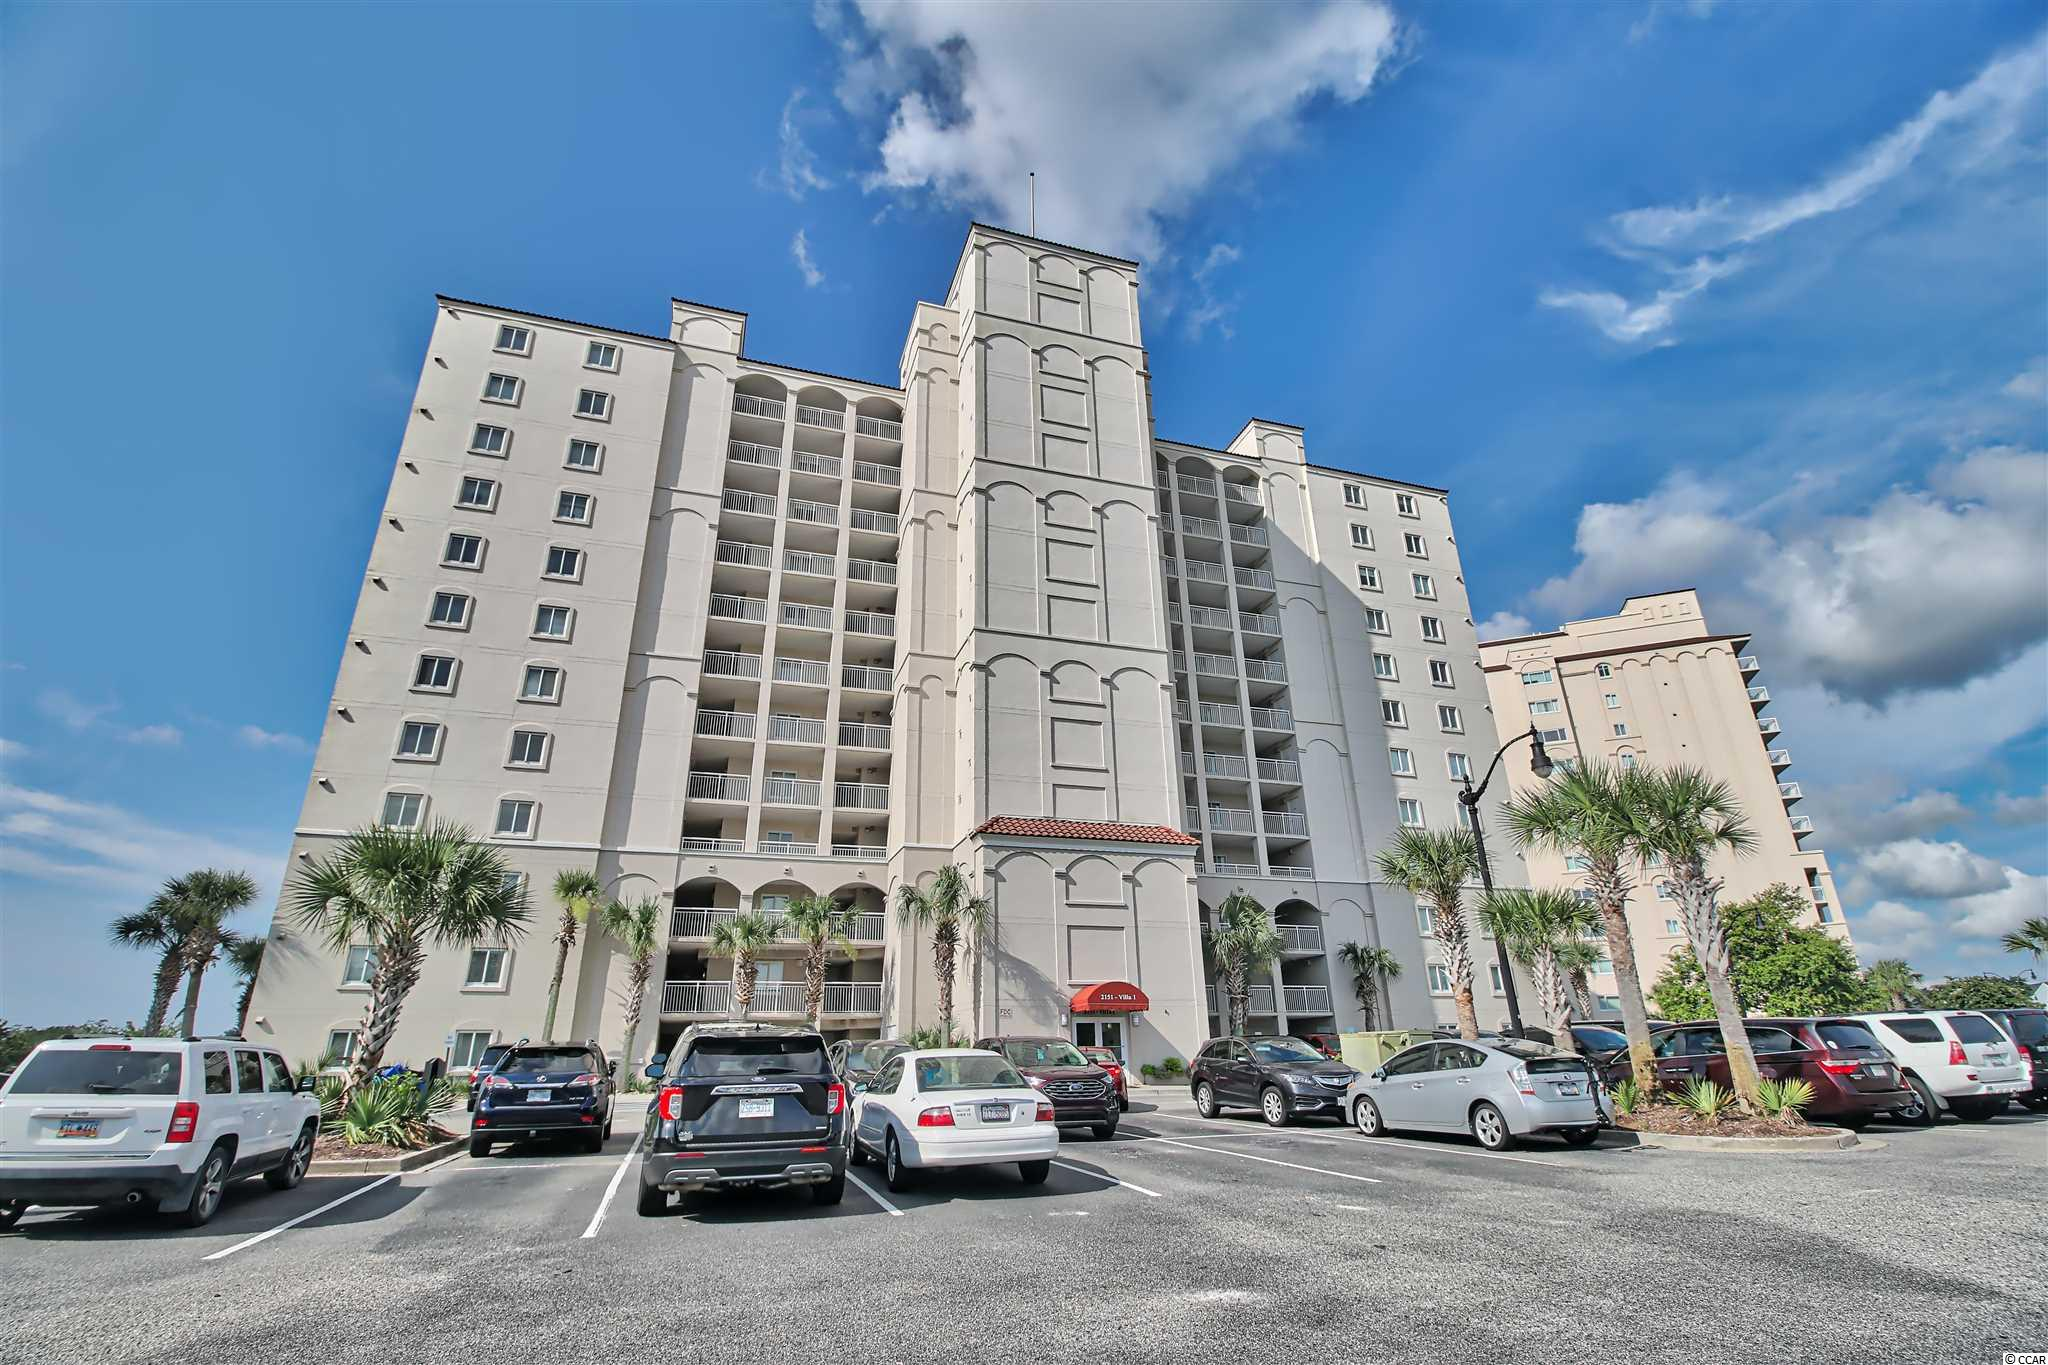 Gorgeous 8th floor, three bedroom and three full bath villa located in the very sought after Barefoot Resort Yacht Club Villa I.  This home is beautifully decorated and ready for your enjoyment.  This villa has three lockout units which can be rented separately or use the entire unit as a primary home as the current sellers do.  Great rental potential.  Awesome views of the intracoastal waterway, Barefoot Marina, 15,000 sq. ft. pool and Barefoot Landing from your two balconies.  All appliances in kitchen are brand new including dishwasher, range, microwave and refrigerator.  Full-size, stackable GE washer & dryer are two years.  All three HVAC units were replaced 7 years ago.  This villa is being sold totally furnished and with a fully equipped kitchen.